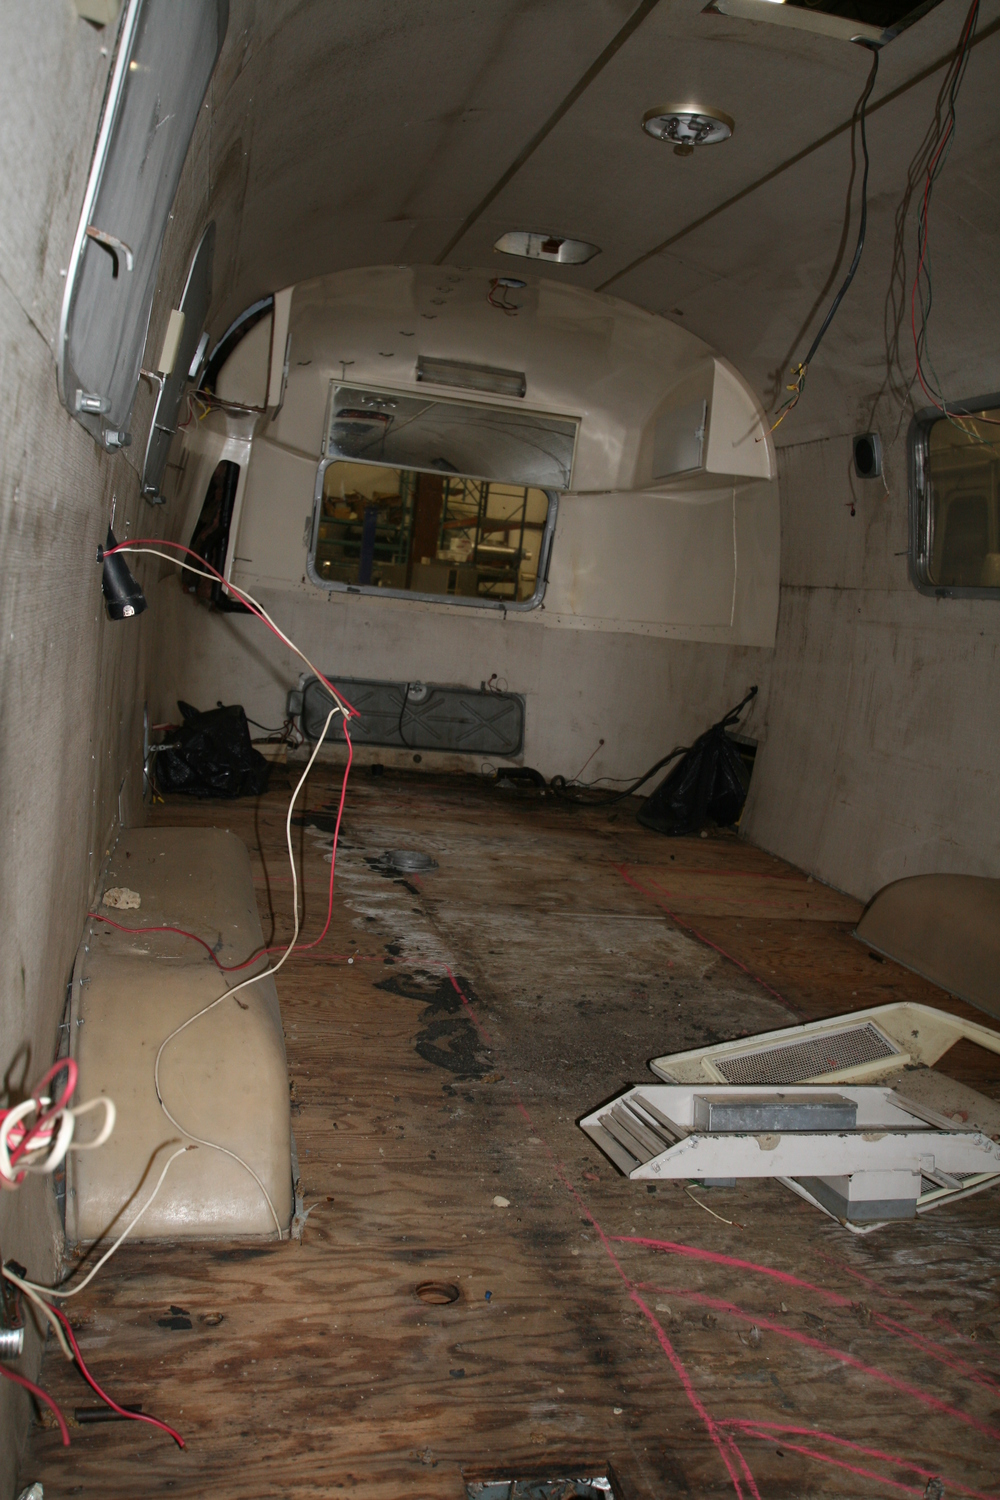 This Airstream showed up in pretty rough shape. The trick was turning it's weakenesses into strengths.